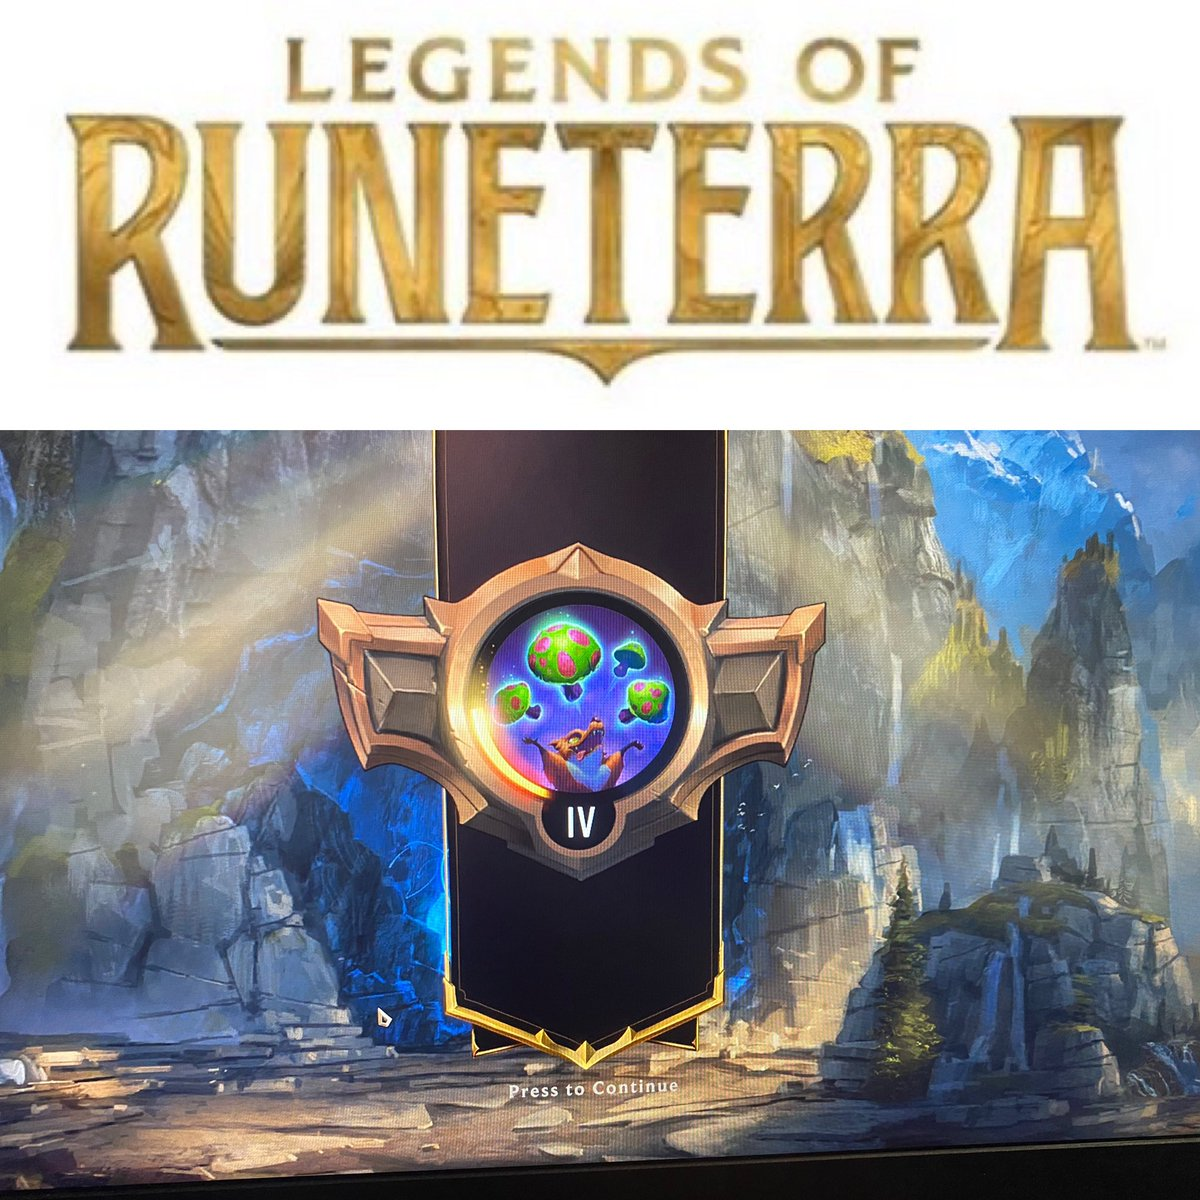 Moving on up! I assume this is bronze but who really knows! Haha #LegendsOfRuneterra #levelup #gaming #allnight #help #sneakenergy #wearesneak #bxa #bxagamingpic.twitter.com/vyFVJN0t9r